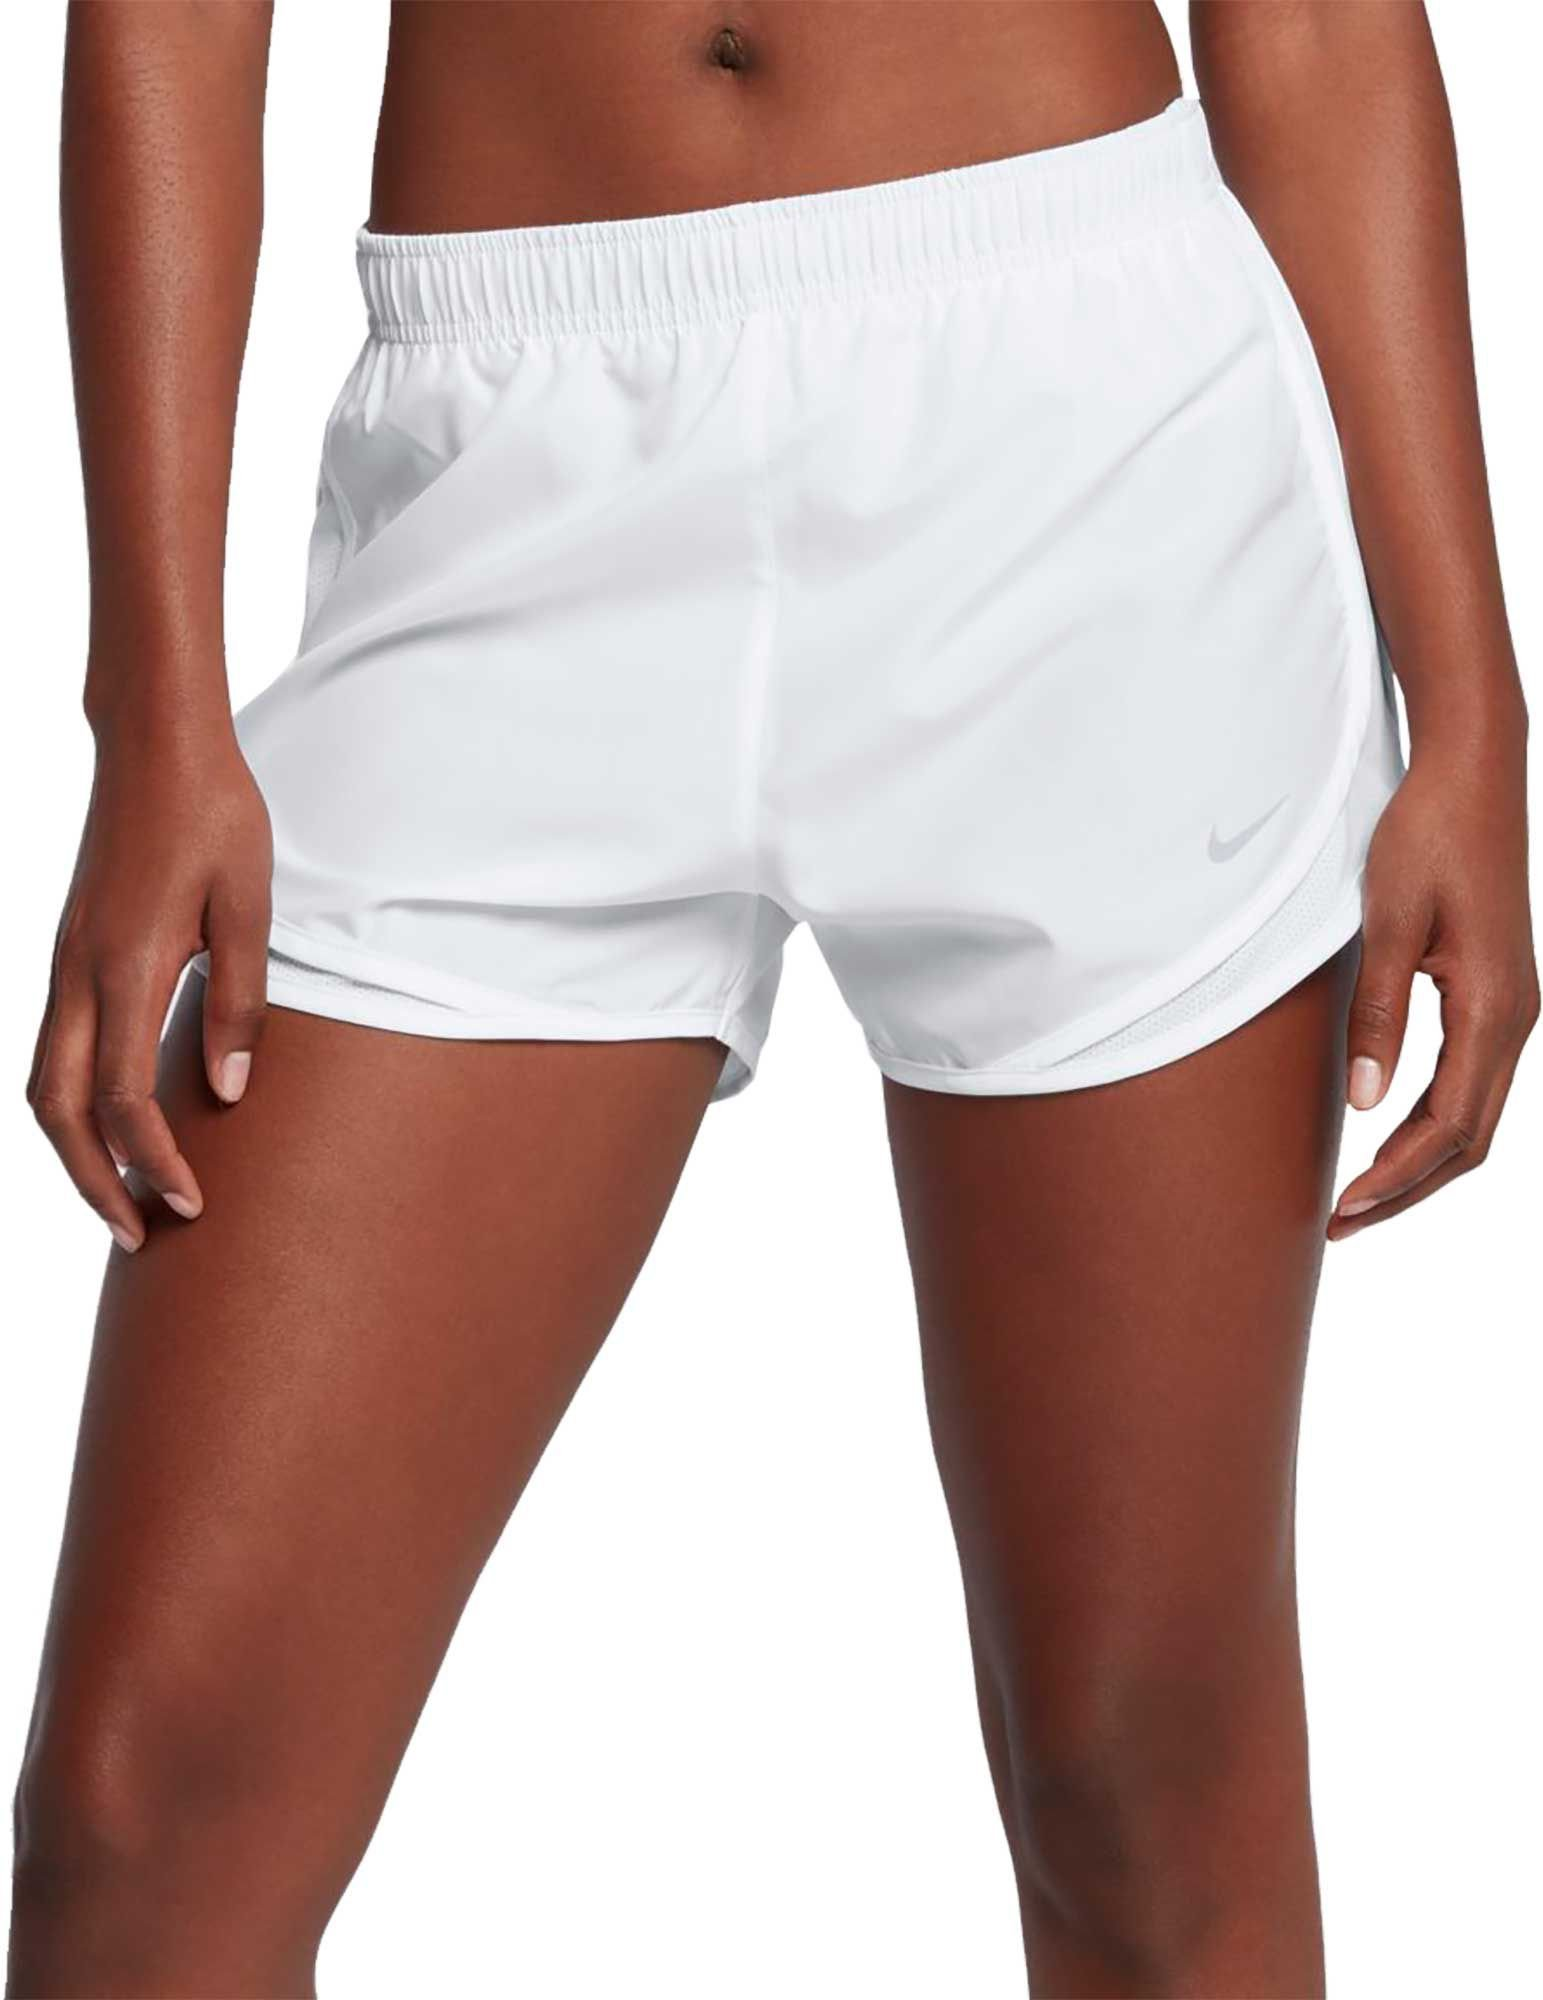 W NK TEMPO SHORT❗️Ships directly from Nike❗️❗️Ships directly from Nike❗️ by Nike